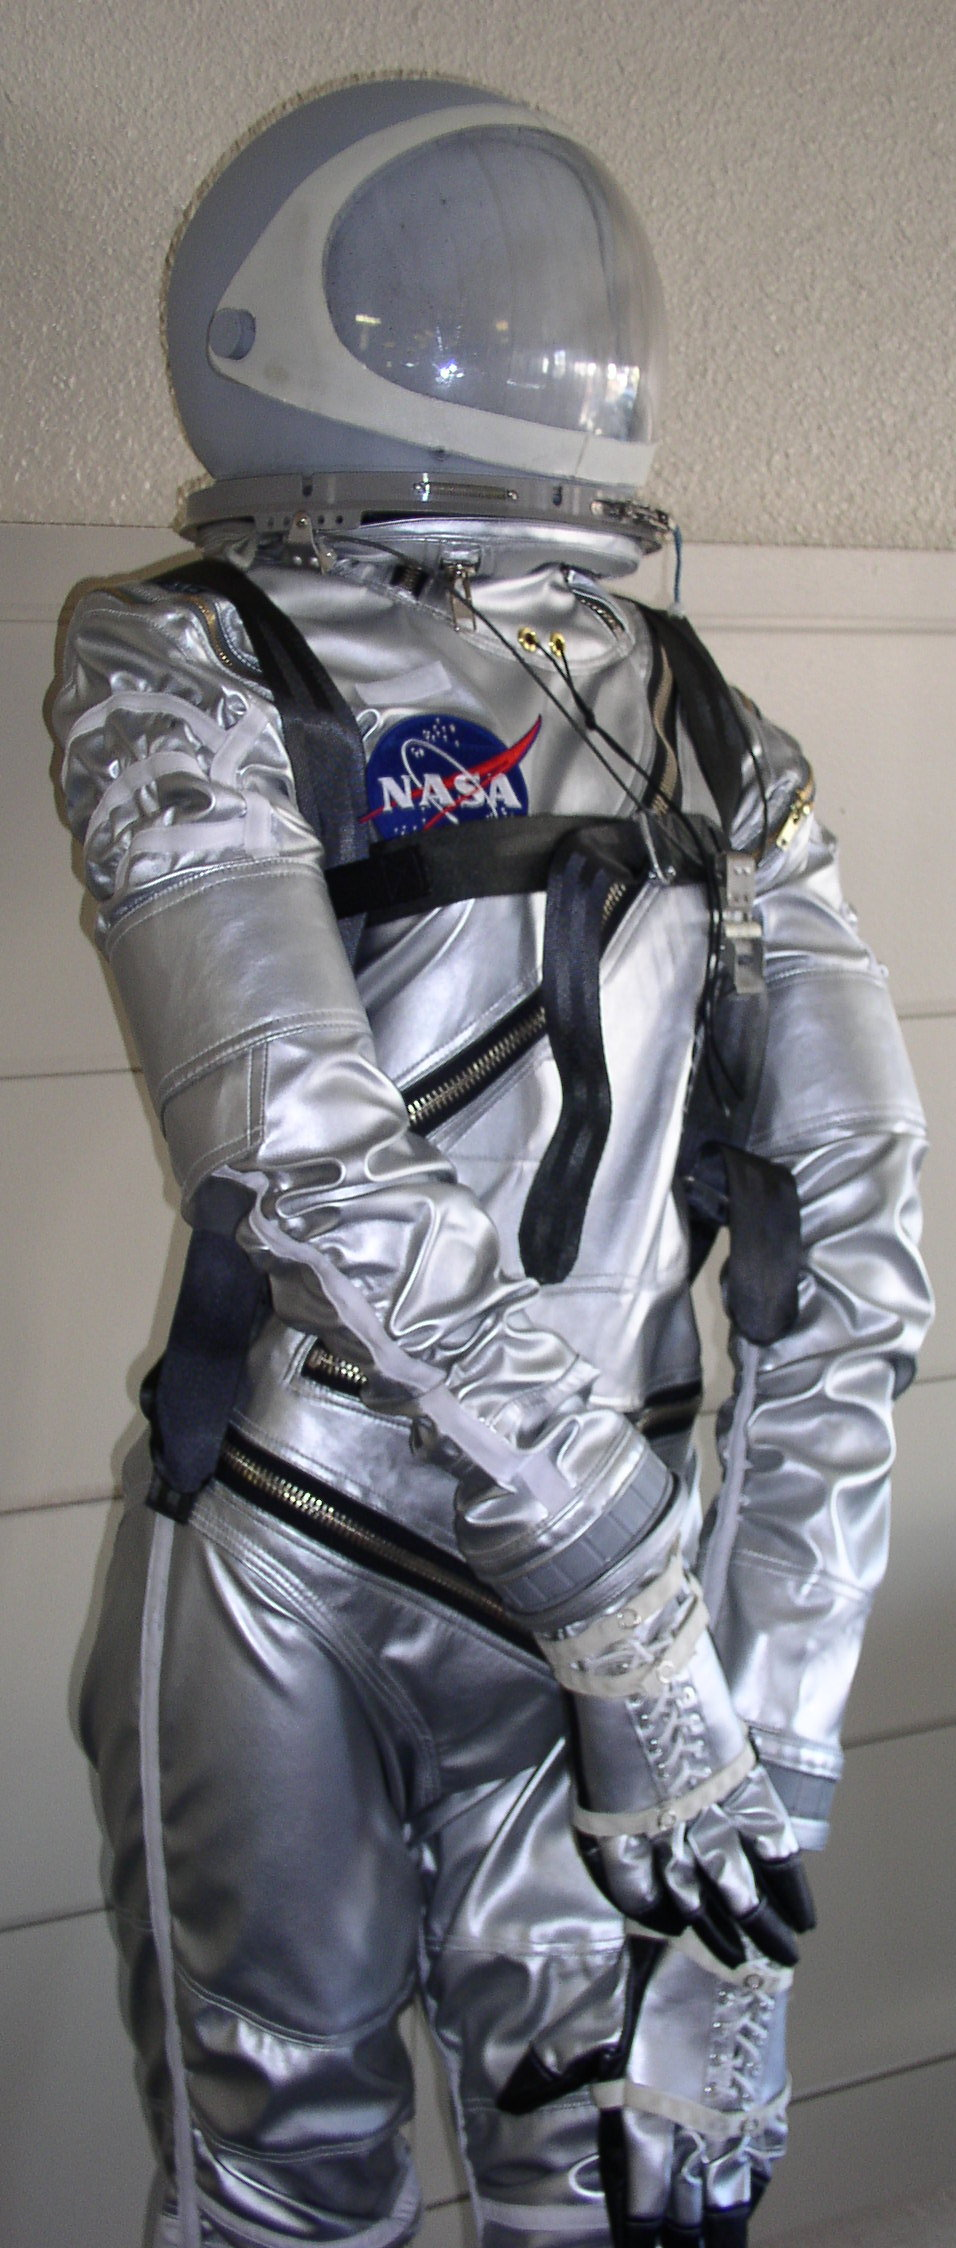 can you show me a sexier version of adams mercury suit